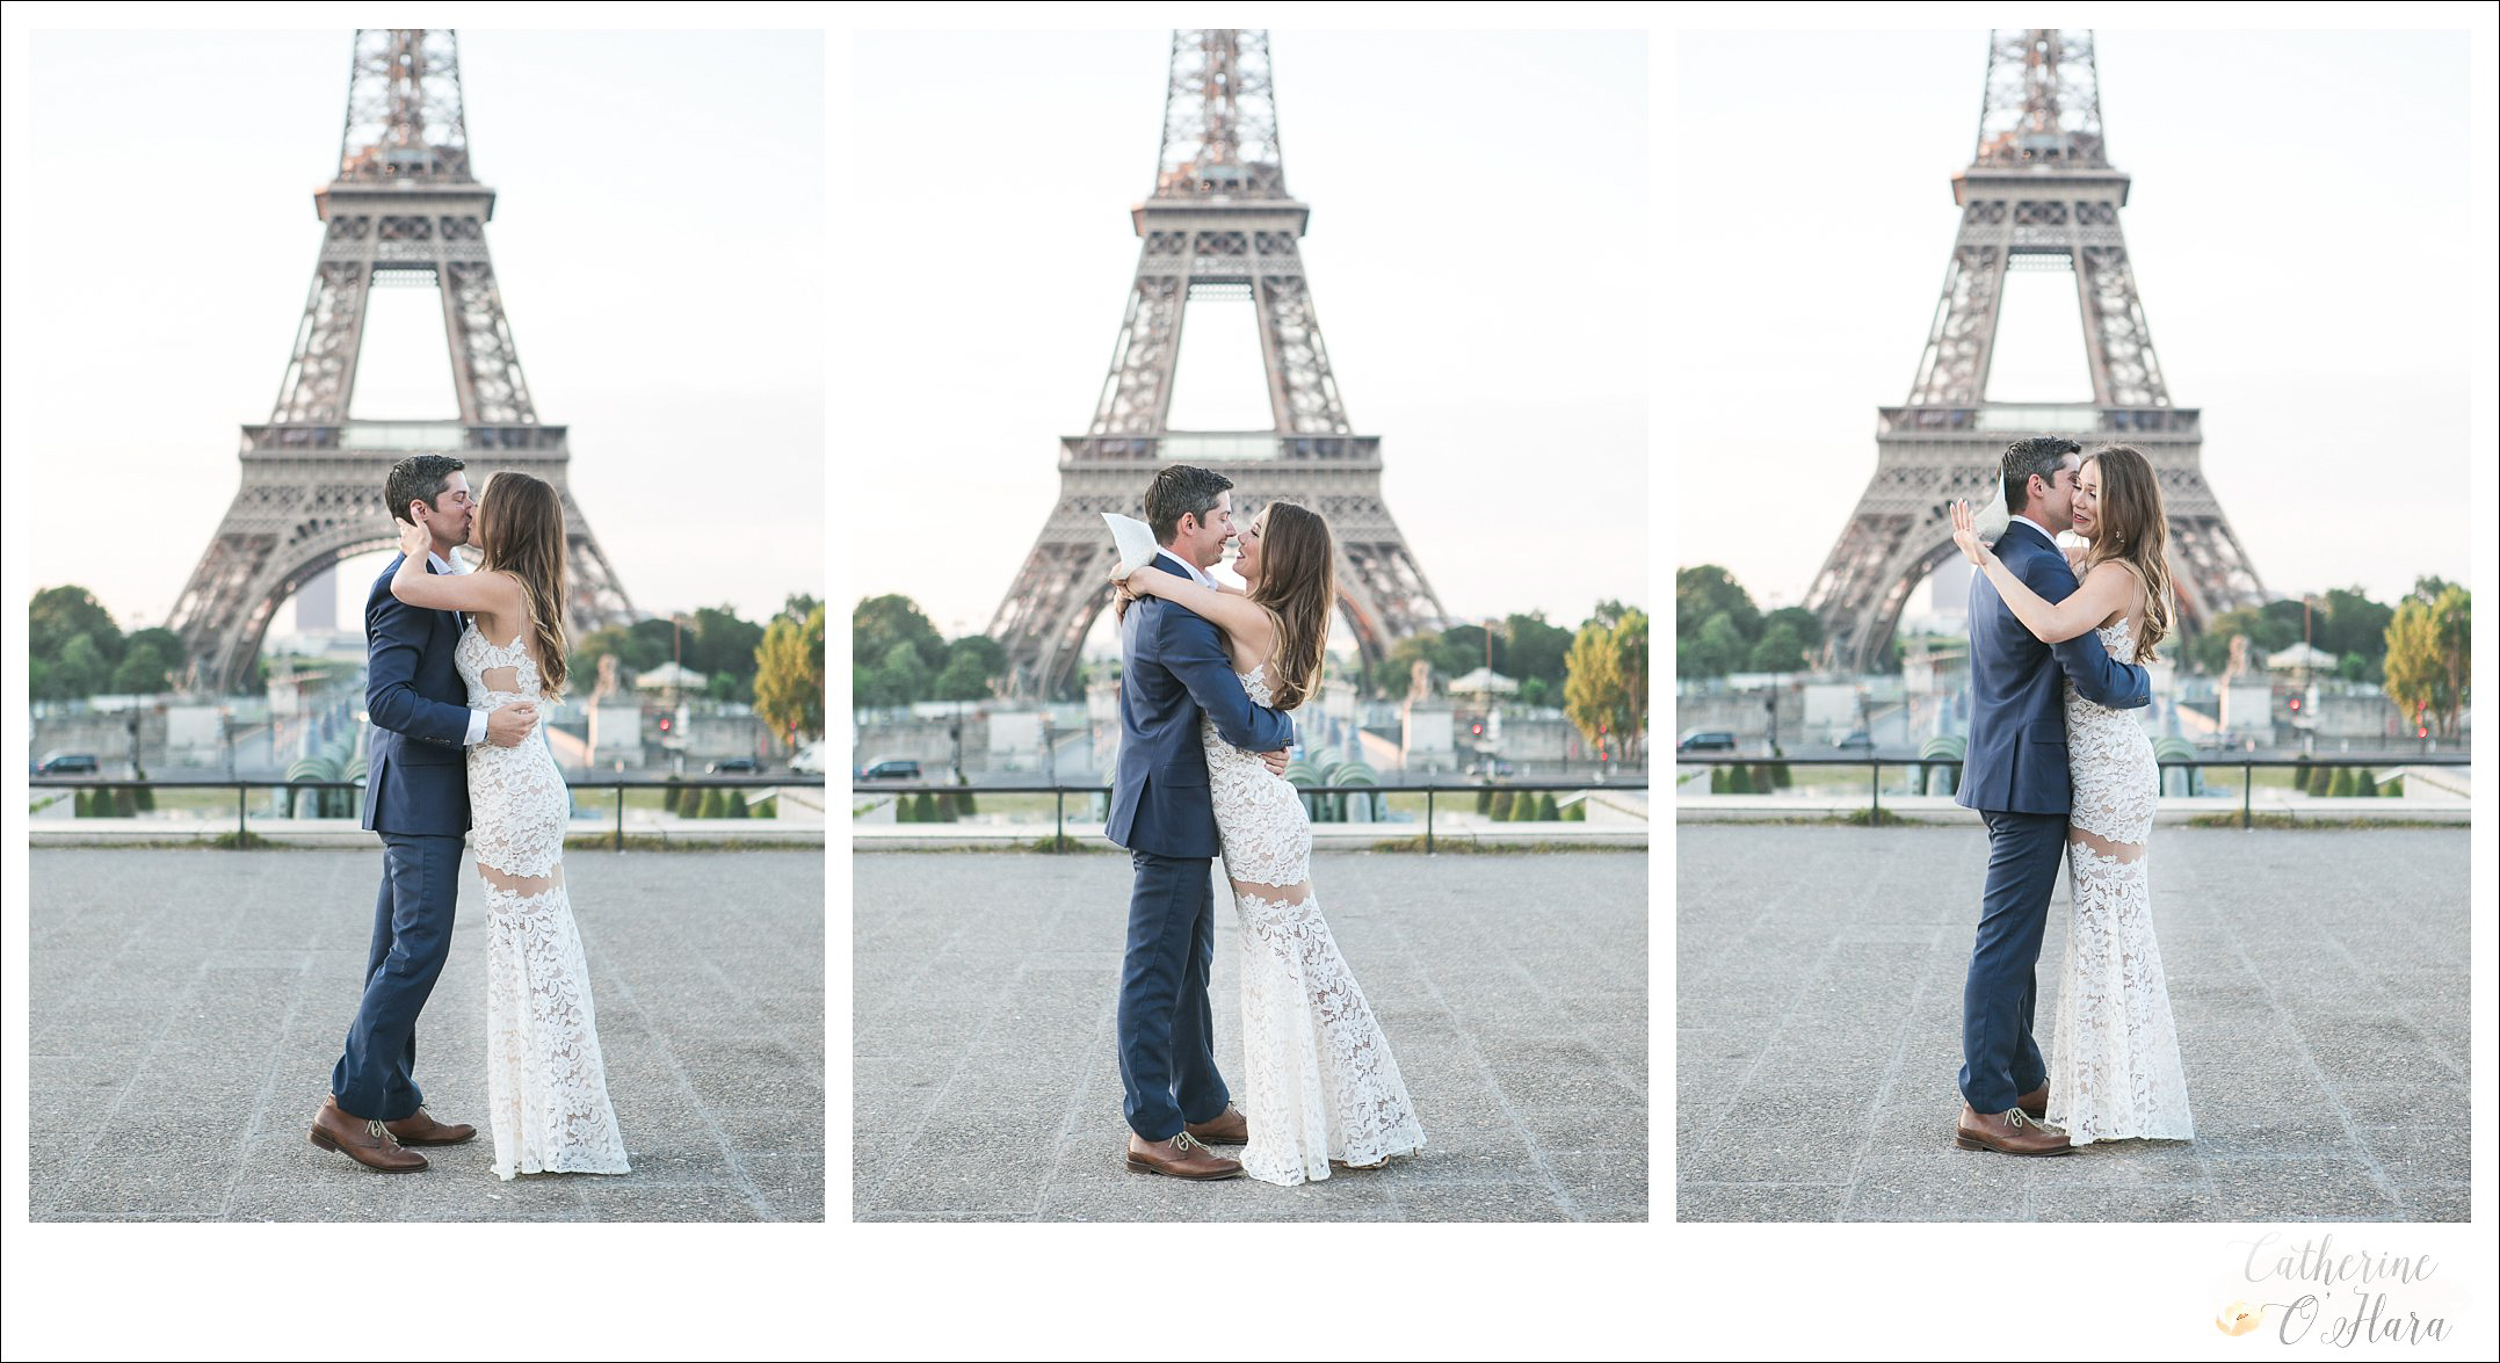 paris france engagement proposal photographer-05.jpg